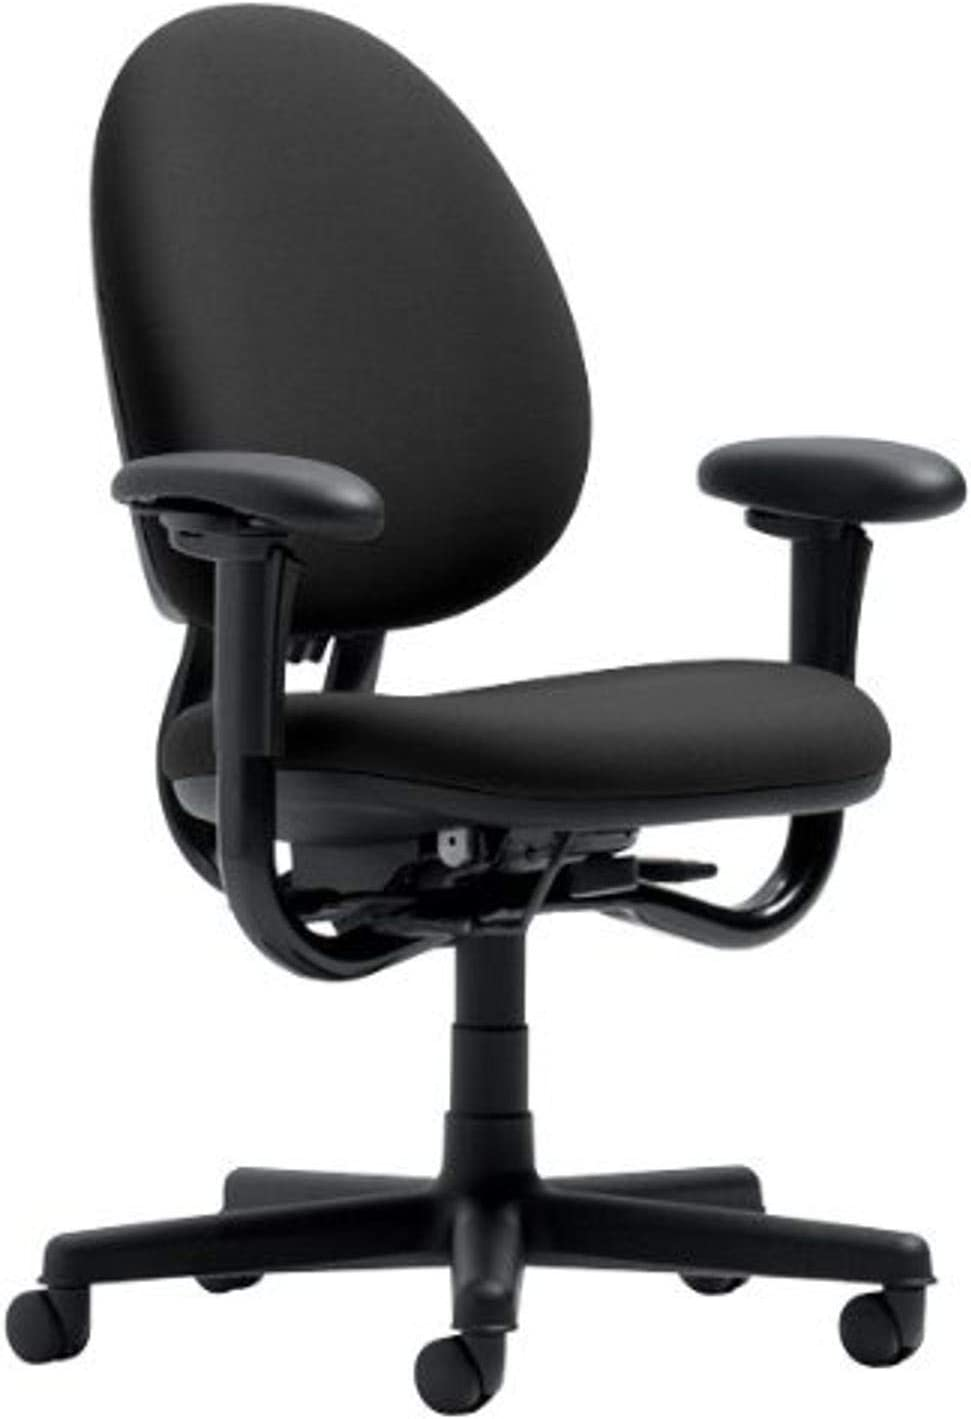 Steelcase Criterion Chair, Black Fabric -